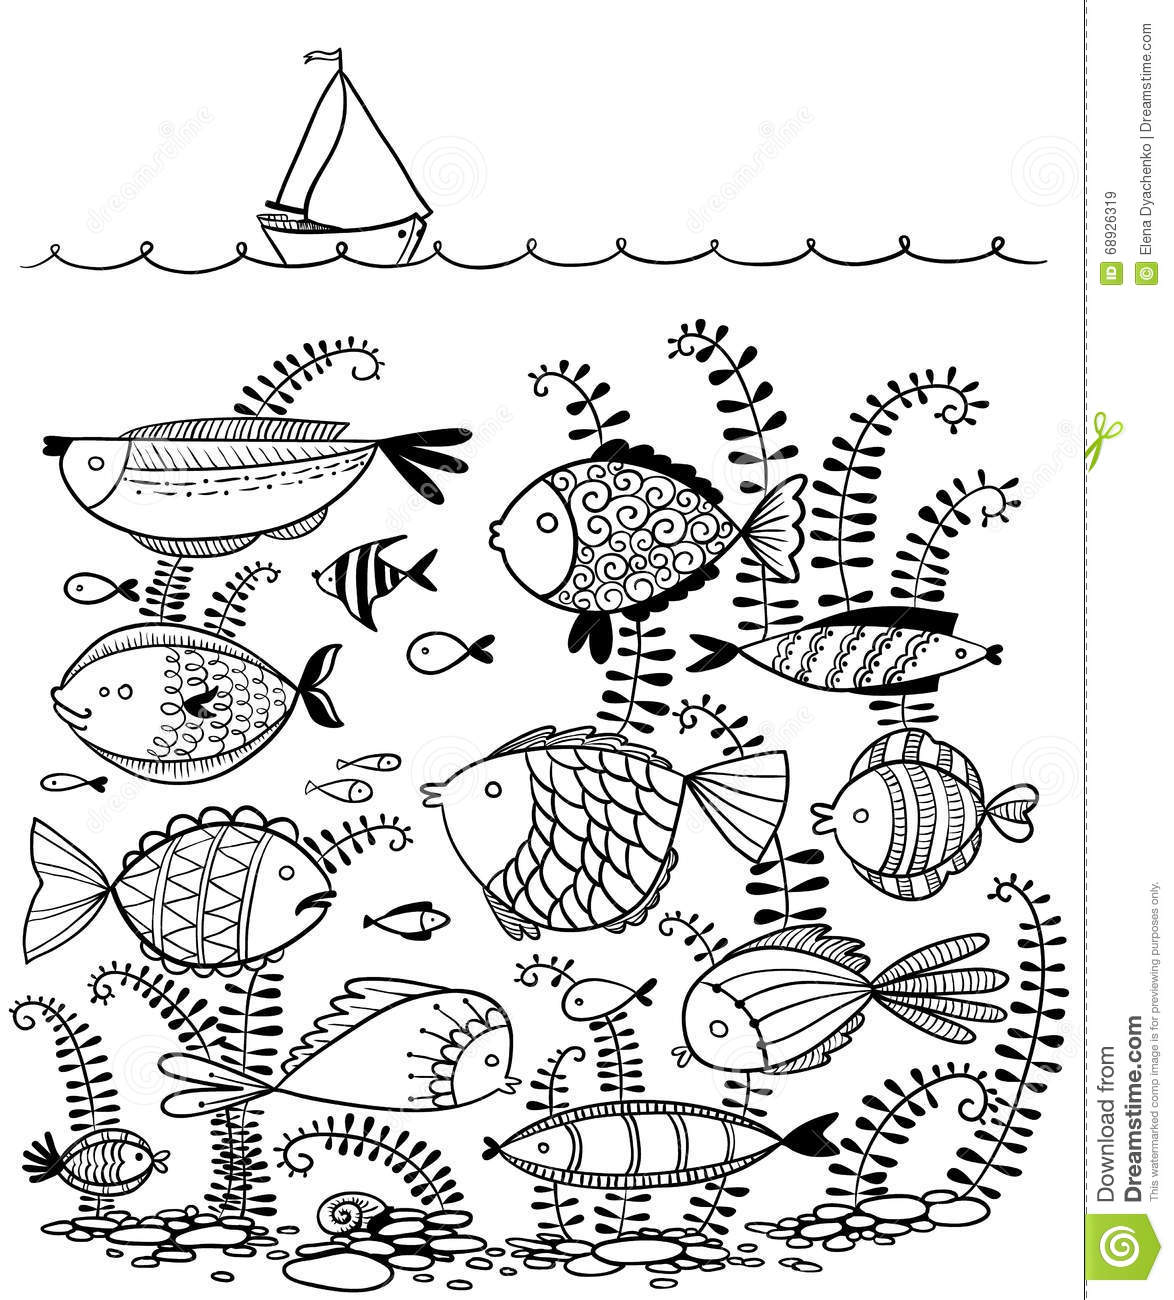 Line Art Underwater : Doodle illustration with underwater fishes and sailing